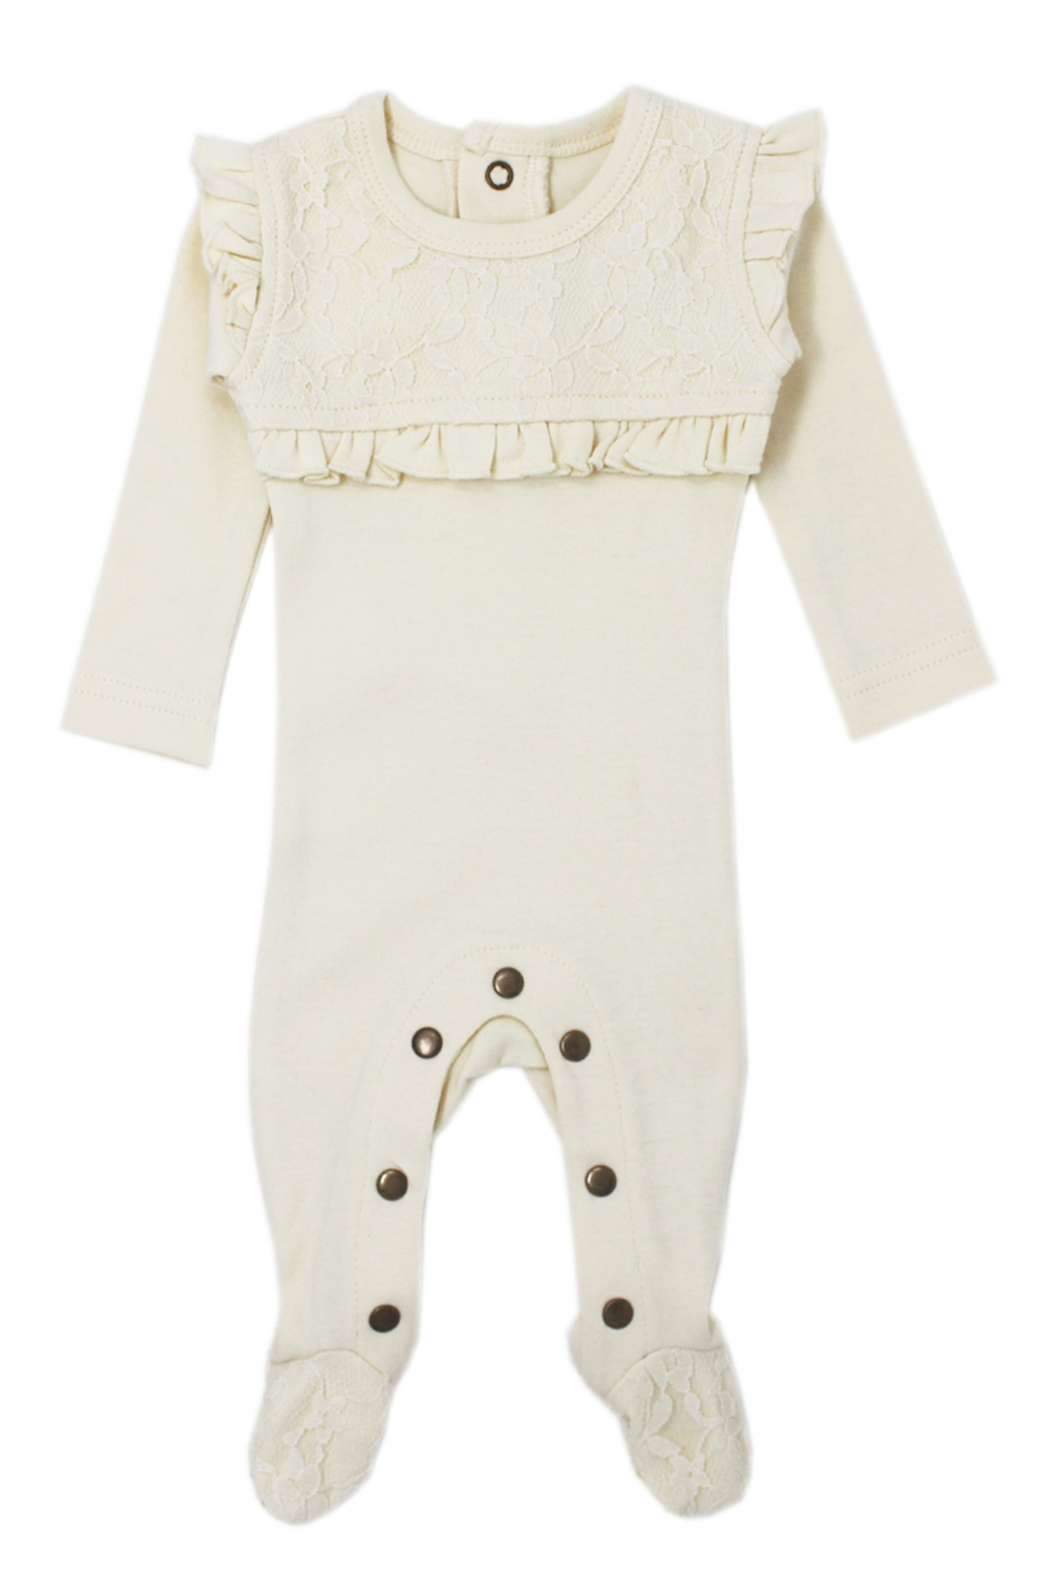 Lovedbaby L'OVEDBABY Infant Baby Organic Smocked Overall Footie - Main Image